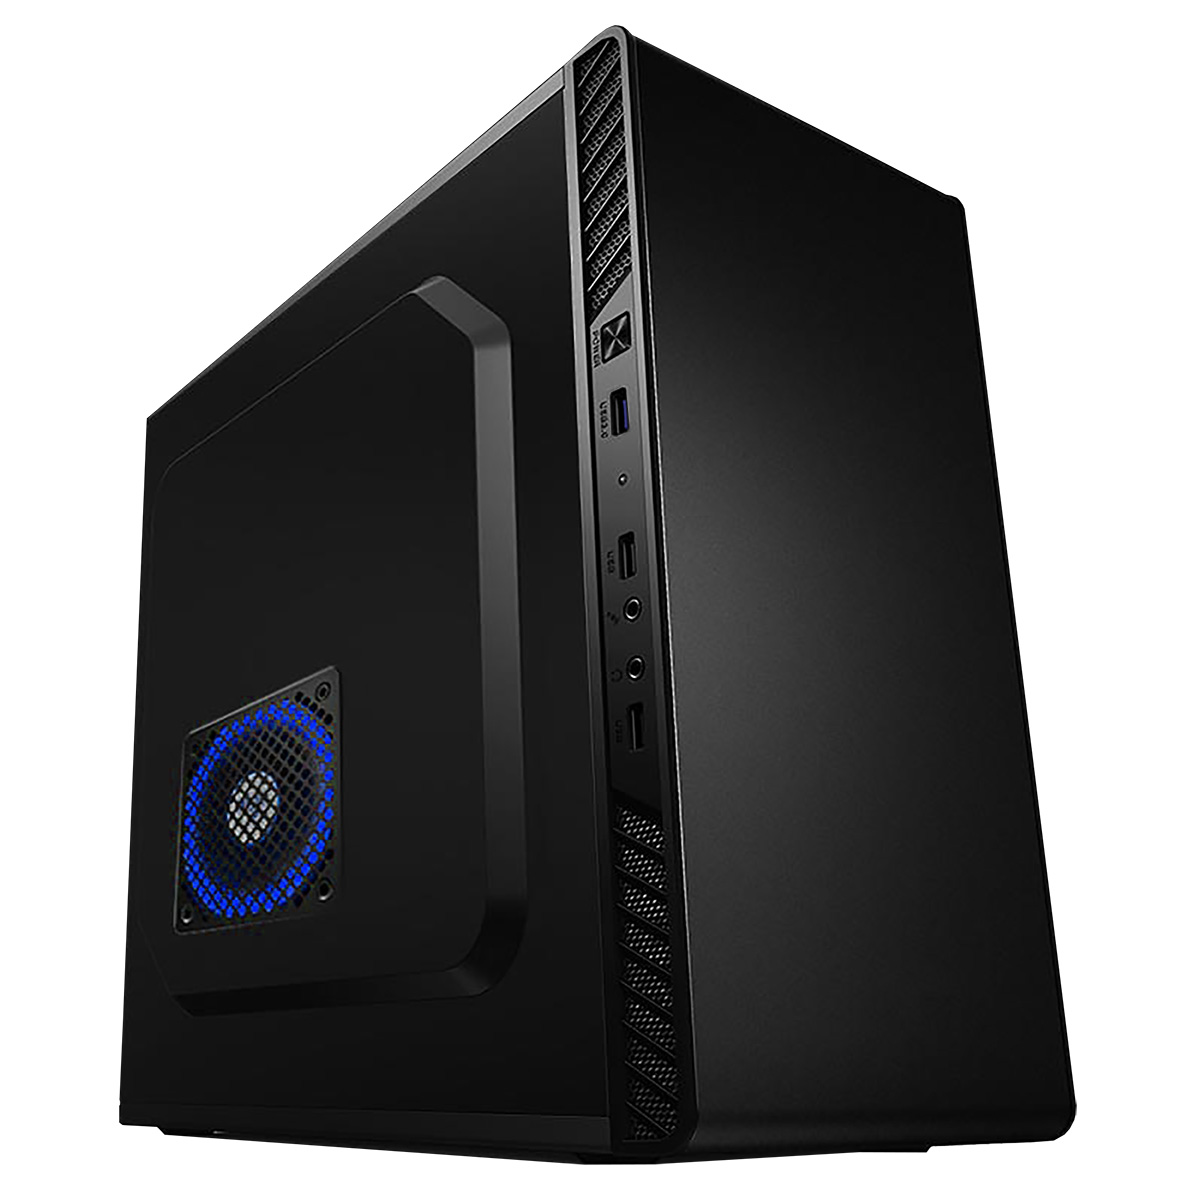 CIT Zinc Black mATX Midi Tower Case